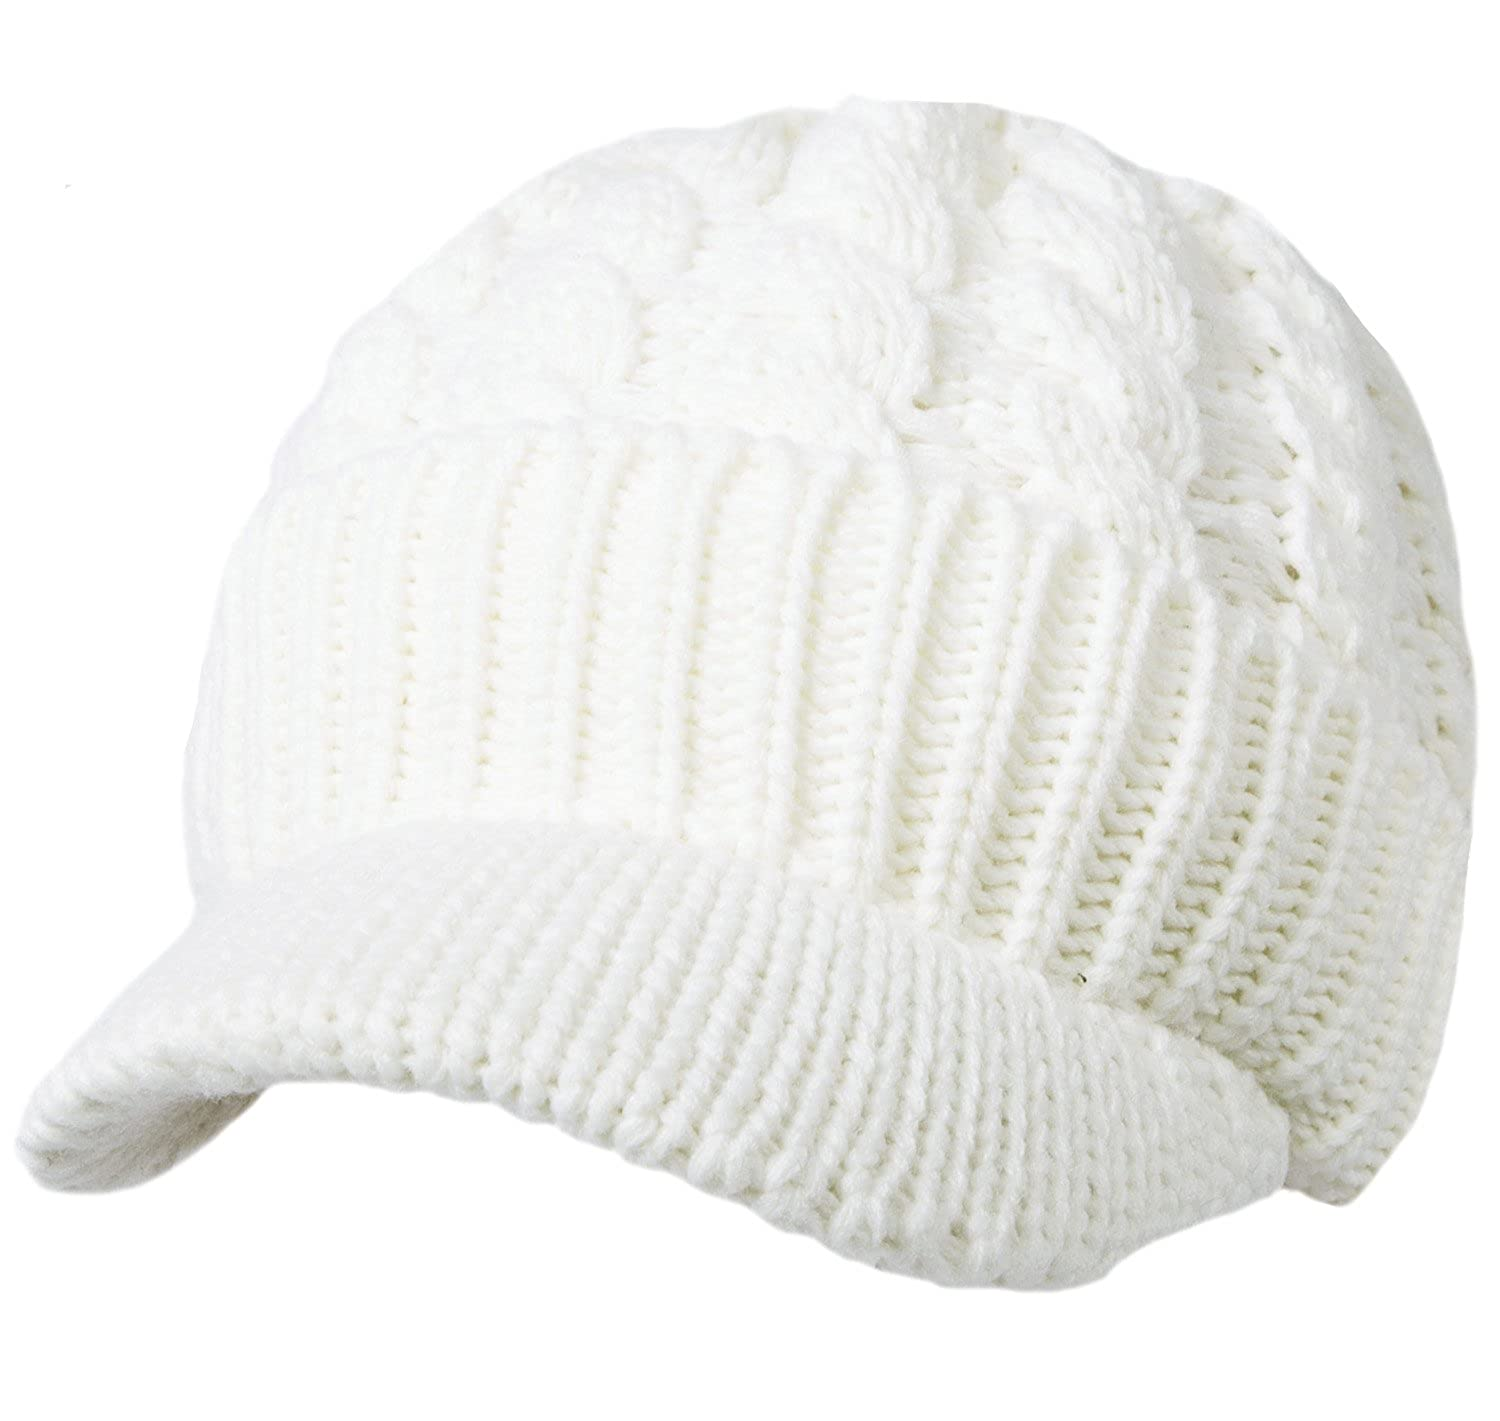 Sierry Womens Cable Knit Hat  Amazon.in  Clothing   Accessories a51fa24ea7fa